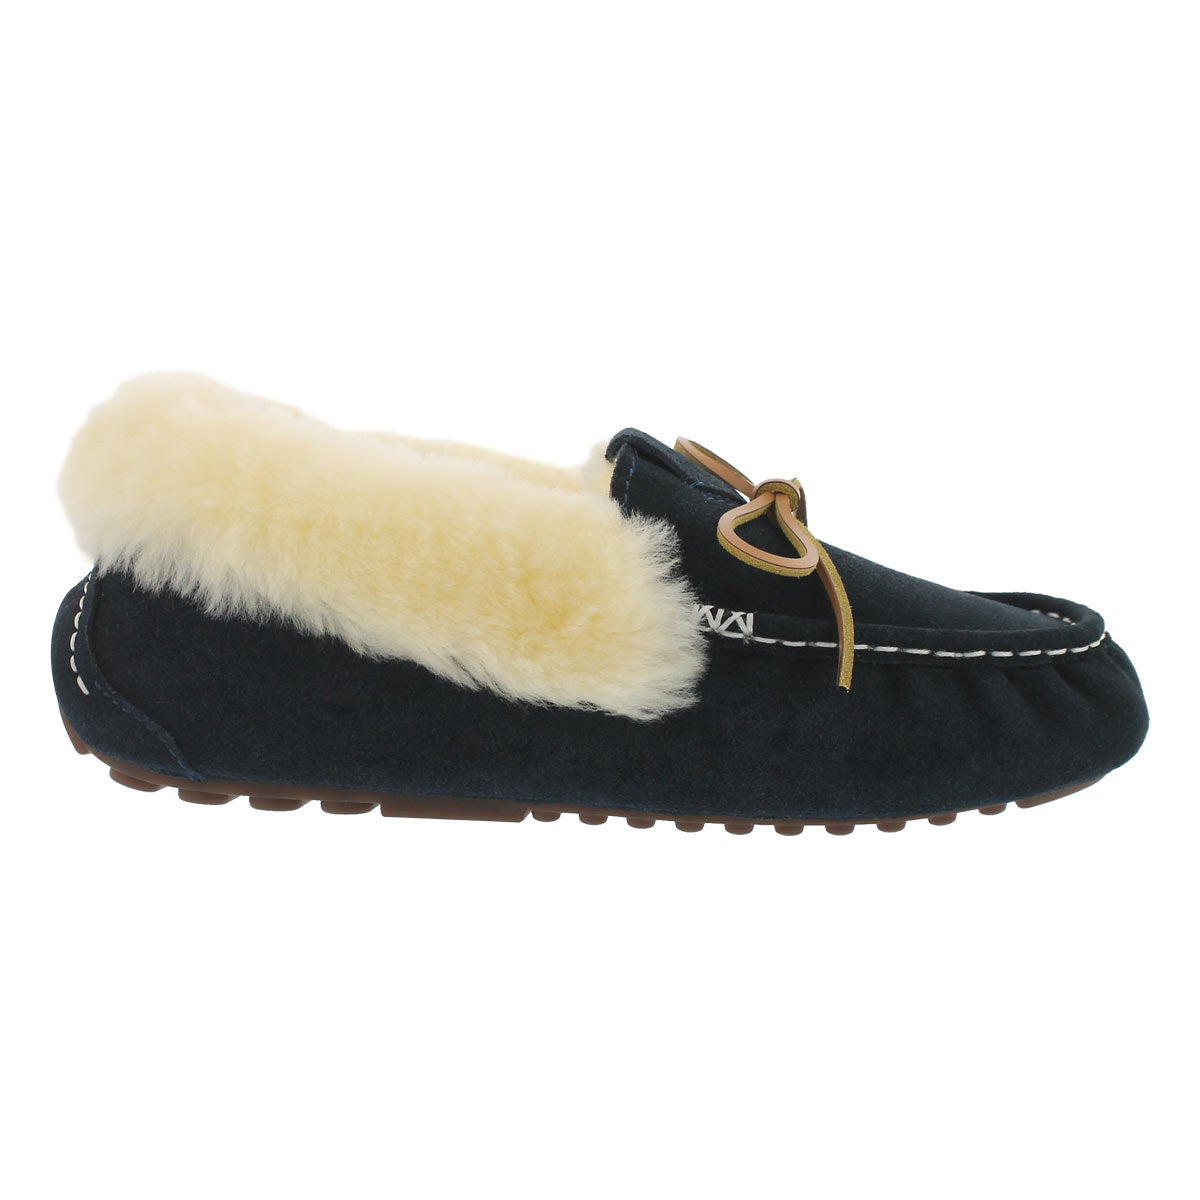 Lds Patty navy shearling lined suede moc